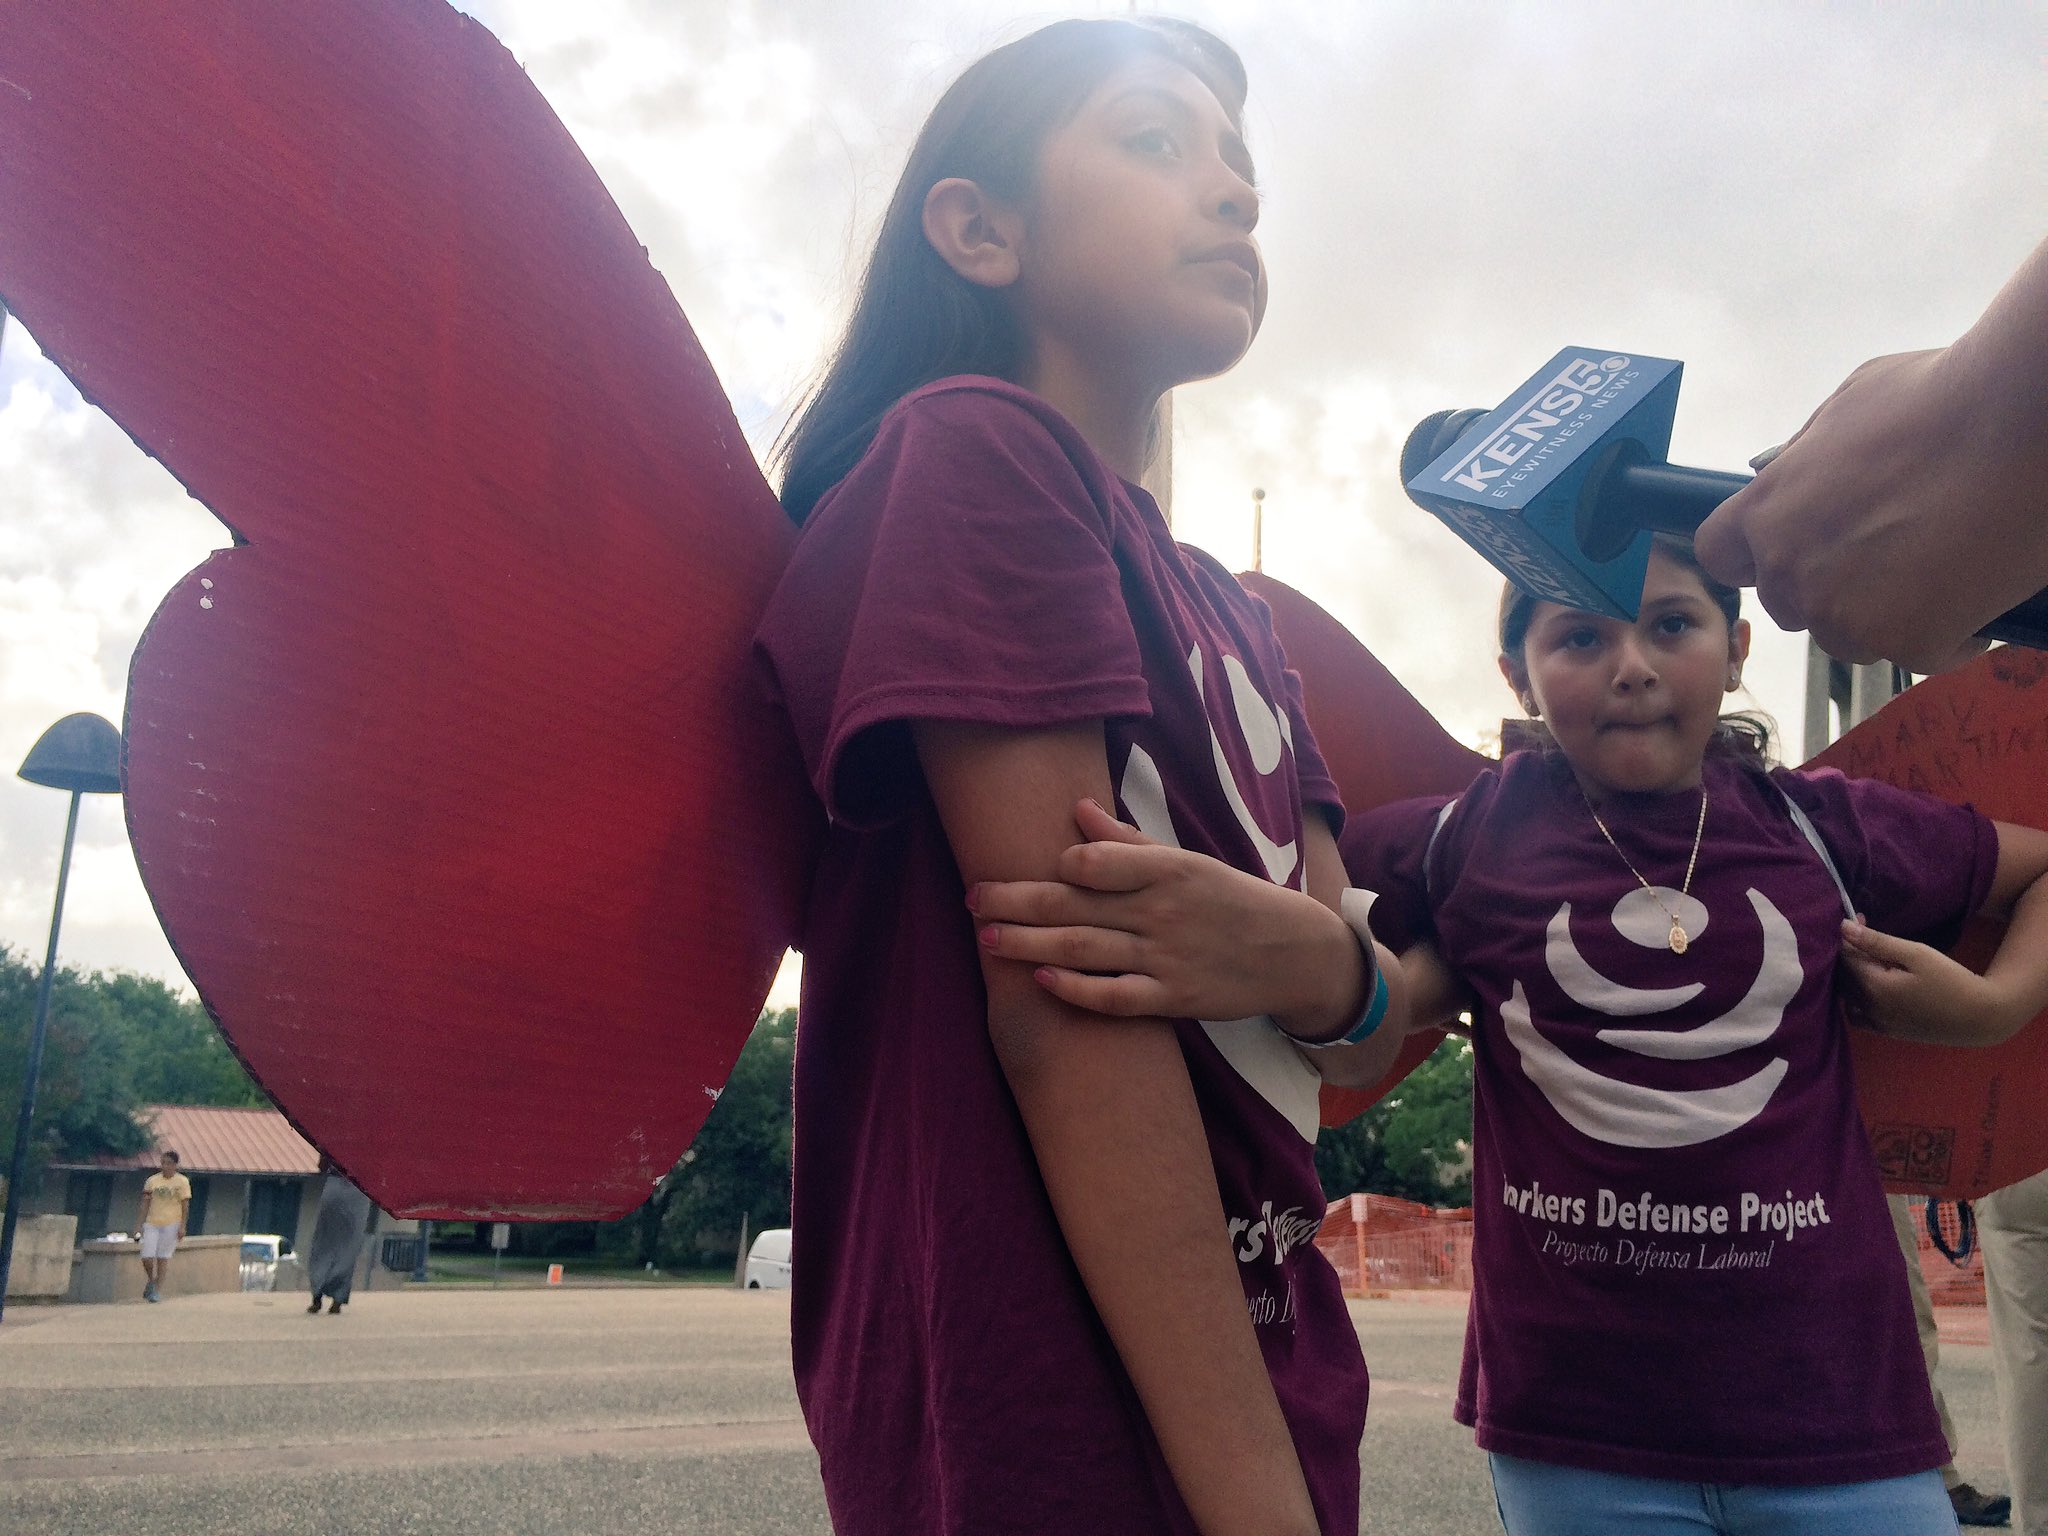 Lizbeth speaking to @KENS5 about why she needs to fight against sb4. #StopSB4 https://t.co/T6TRsUZAbH